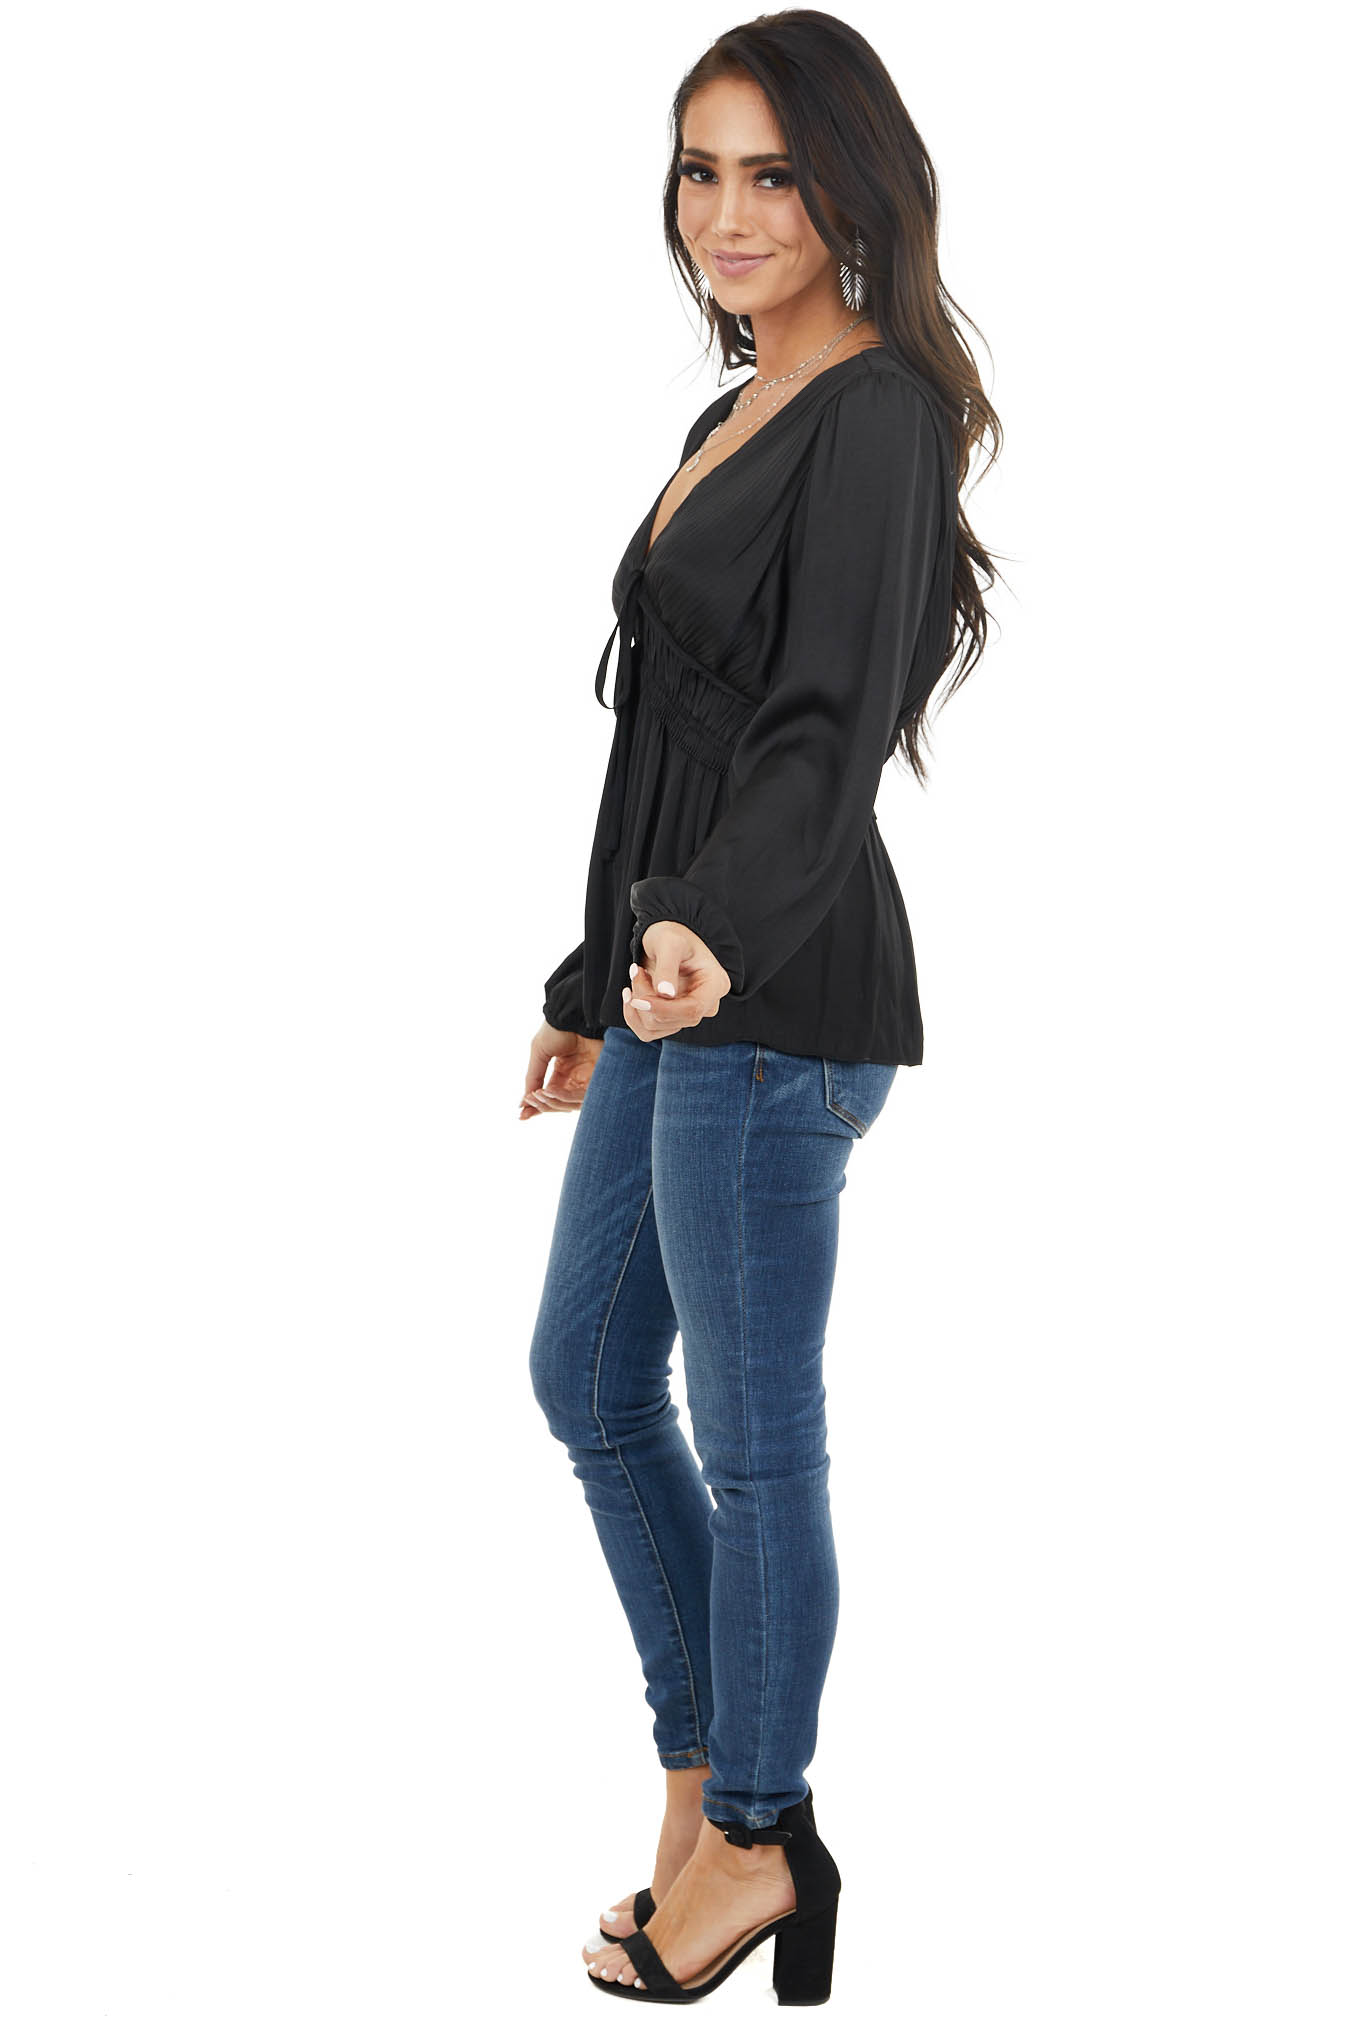 Black Cinch Waist Top with Front Tie and Ruffle Details